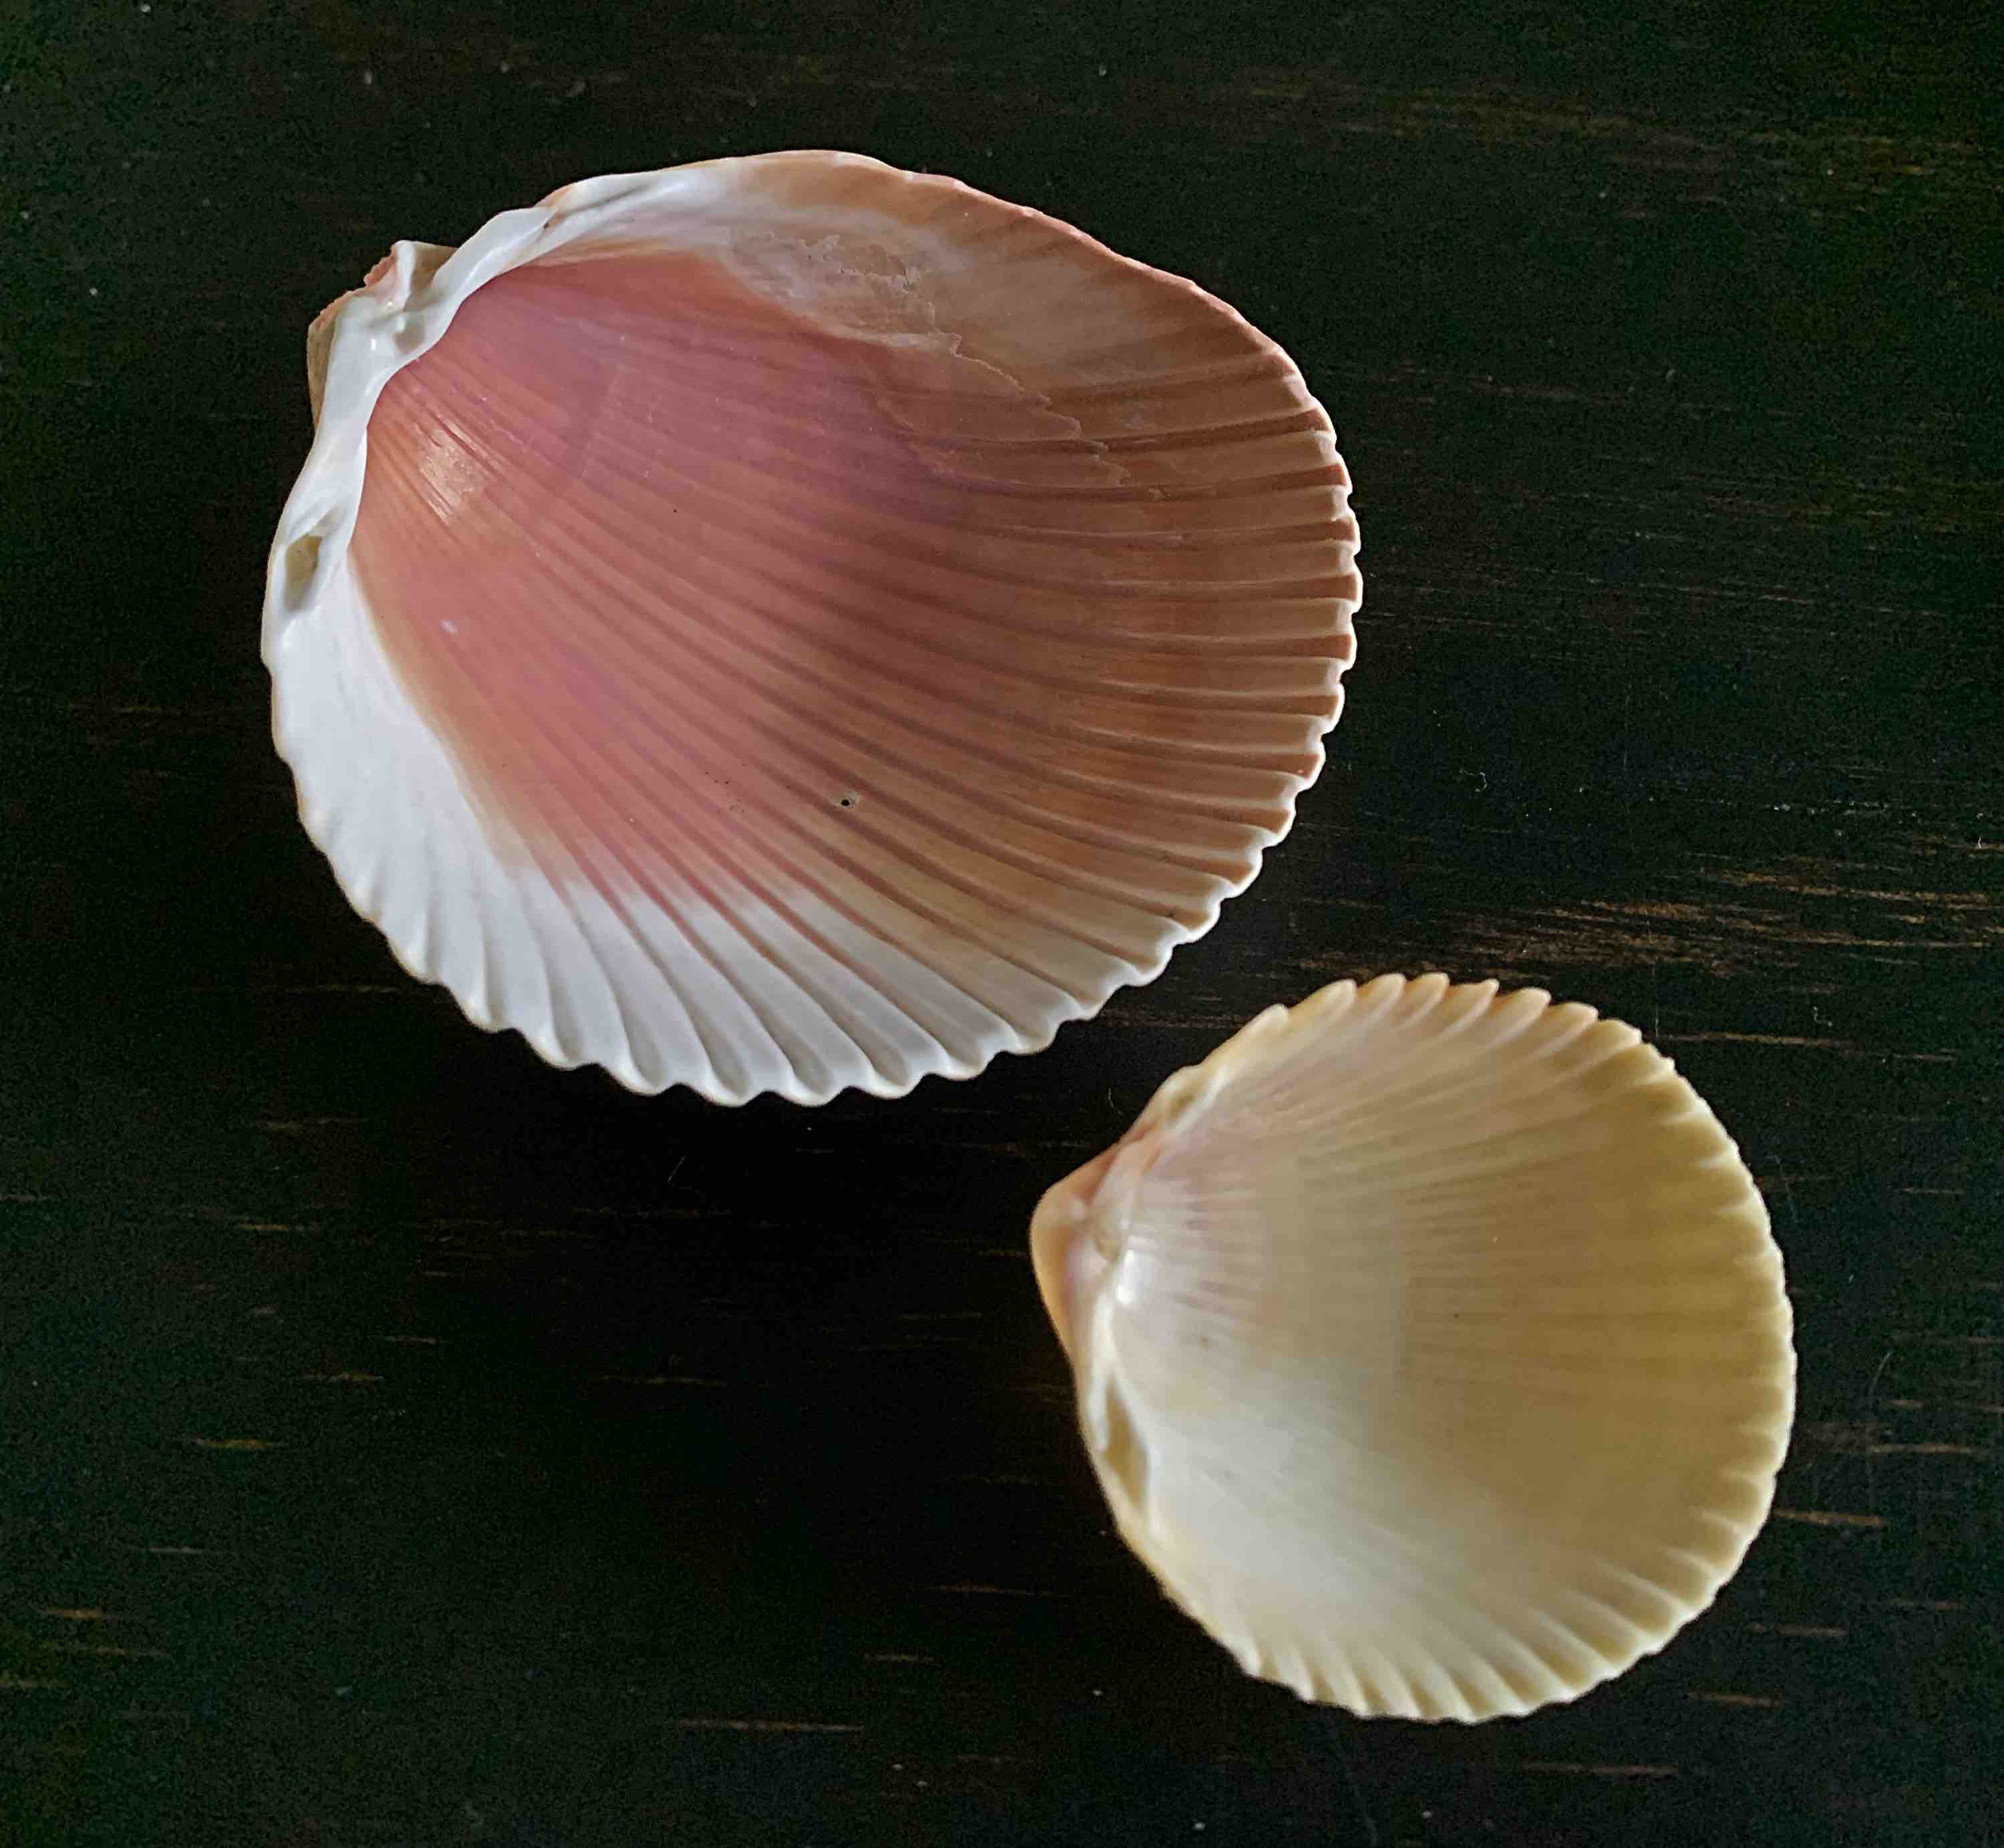 comparing undersides of cockle shells